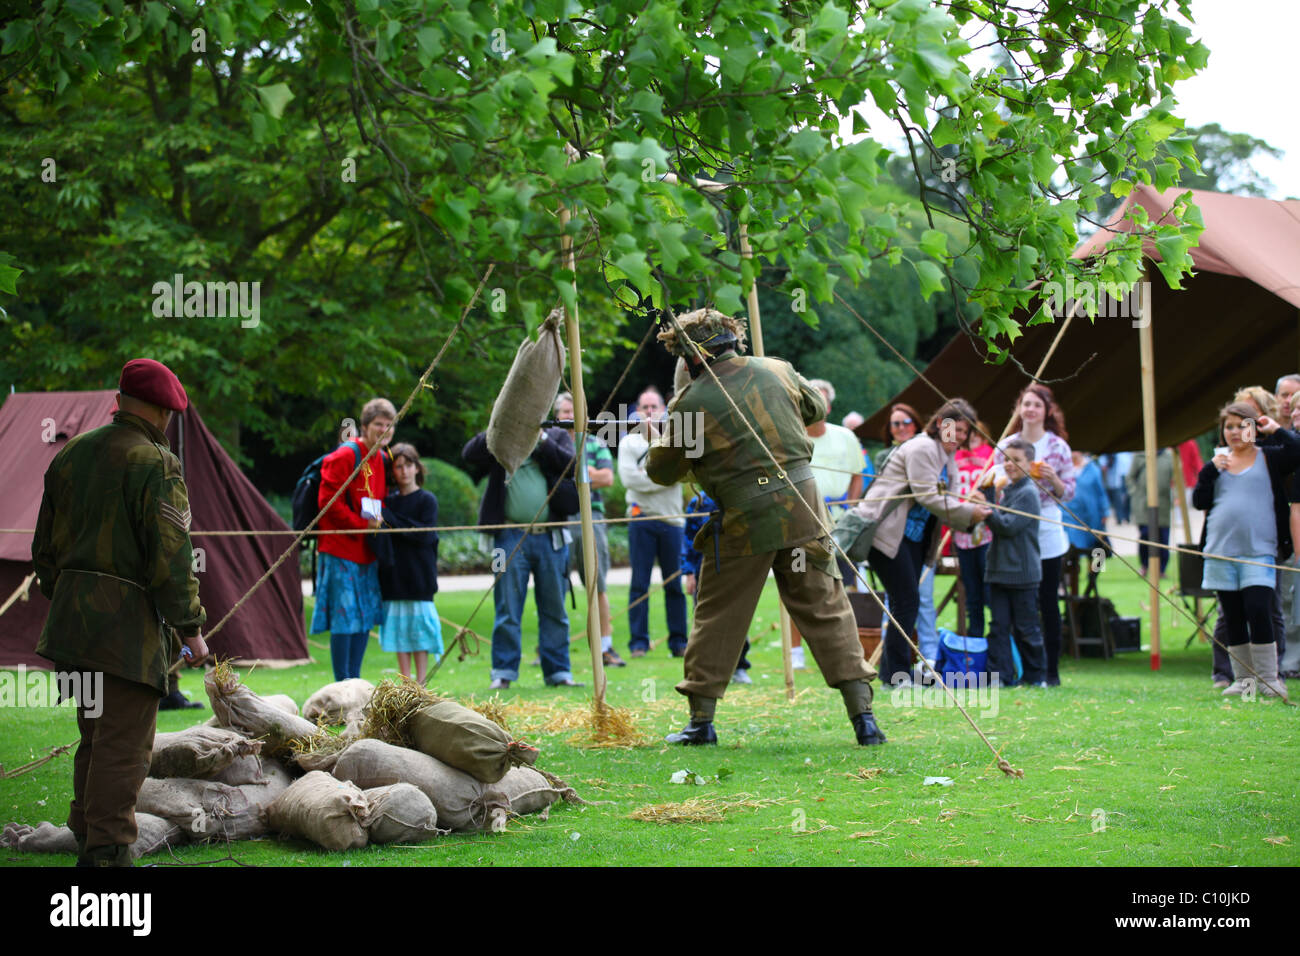 Reconstruction WW2 British Army soldiers conducting bayonet practice - Stock Image